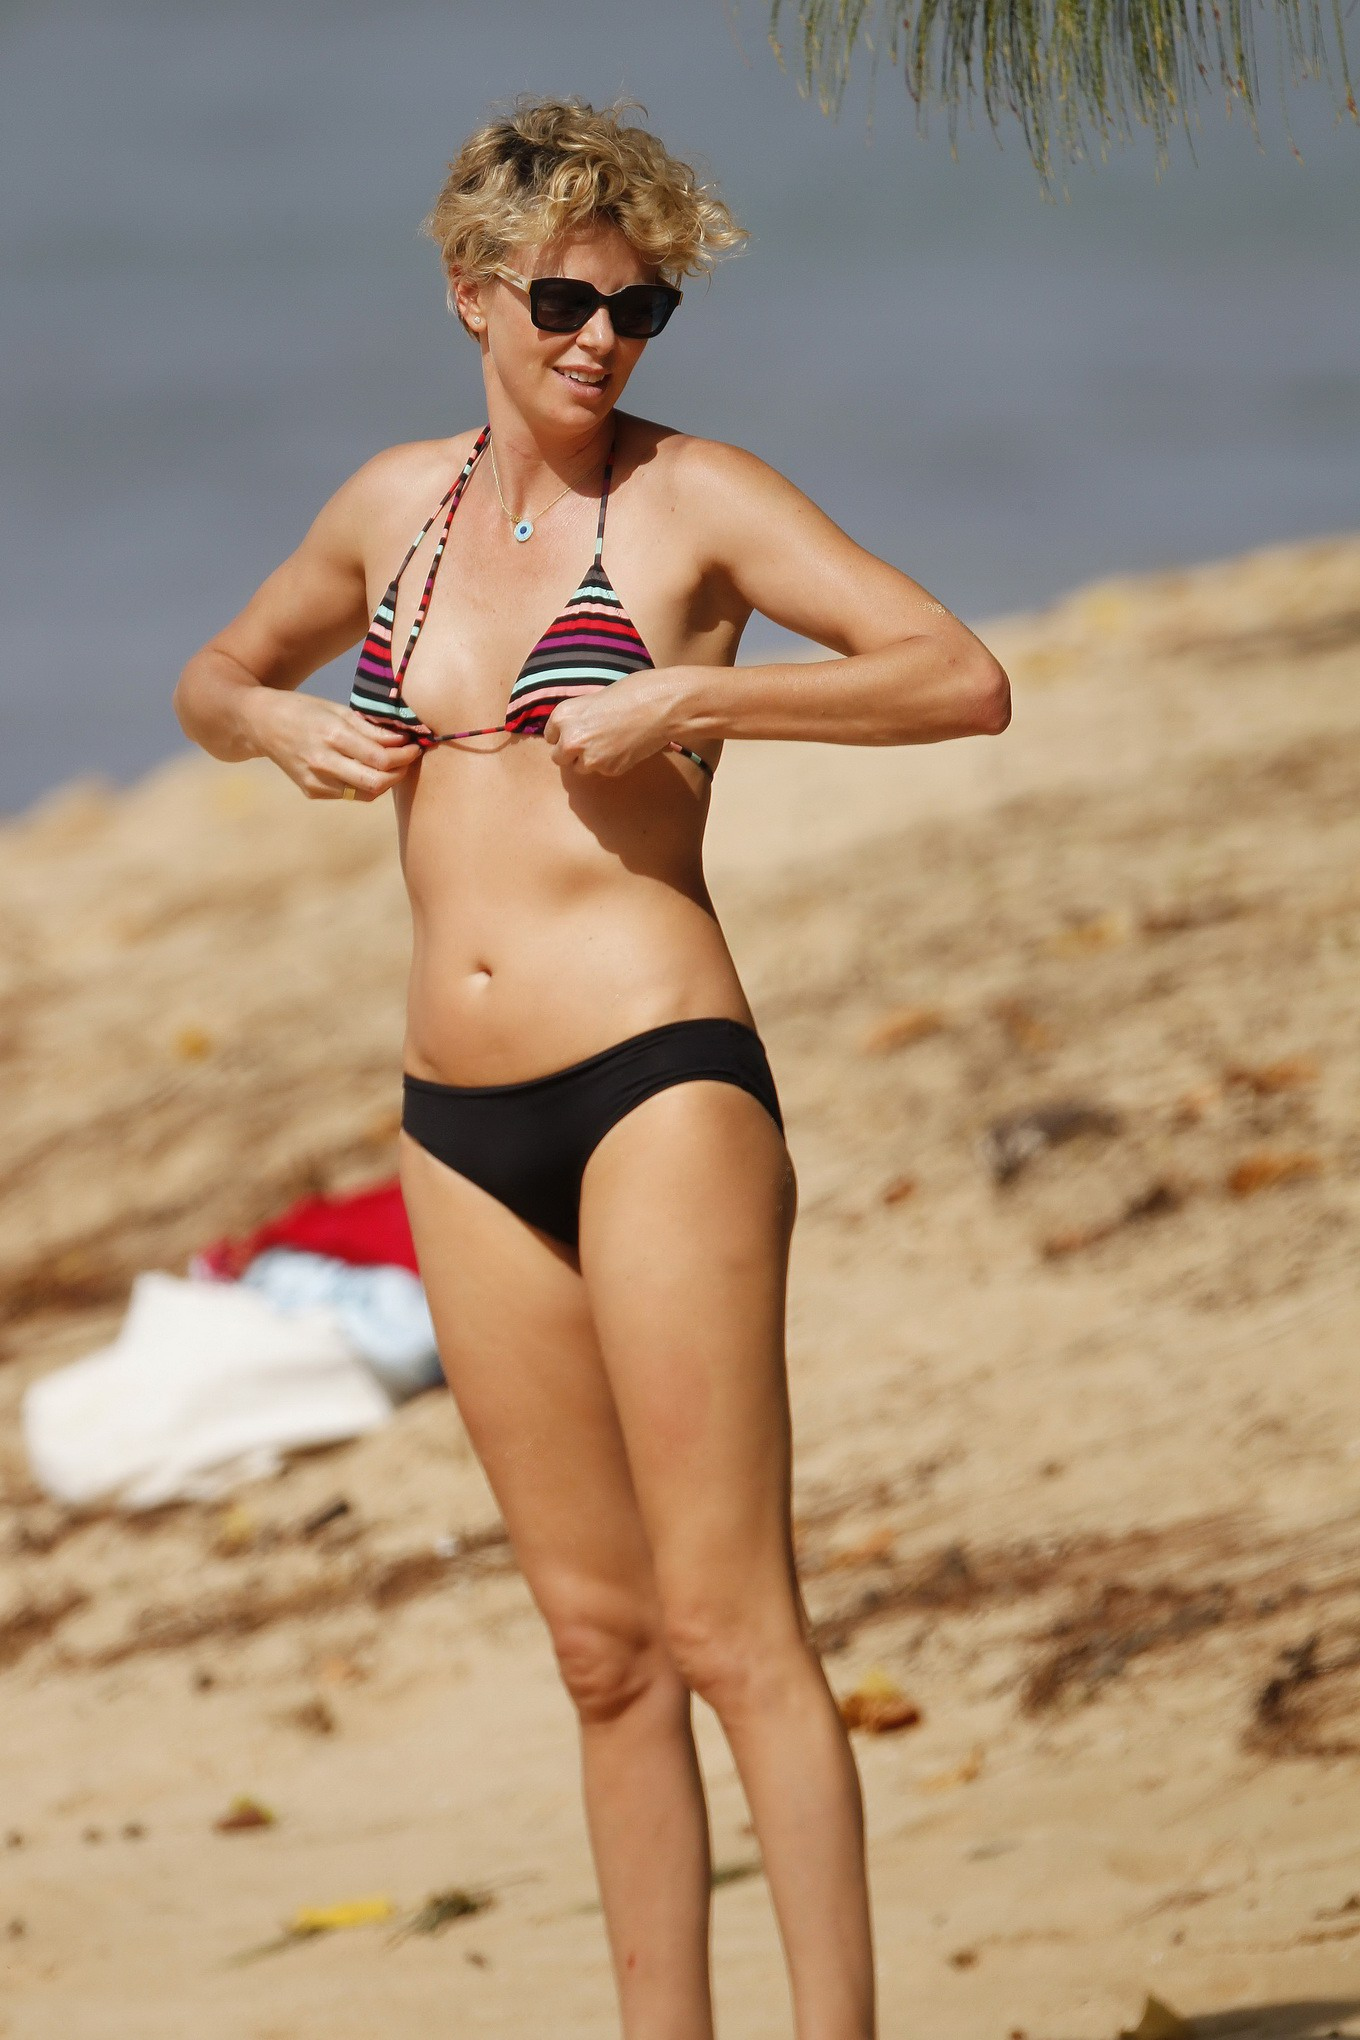 Charlize Theron still hot wearing skimpy two-piece at the beach in ...: www.celeb6free.com/pics/celeb2021/topcelebs.html